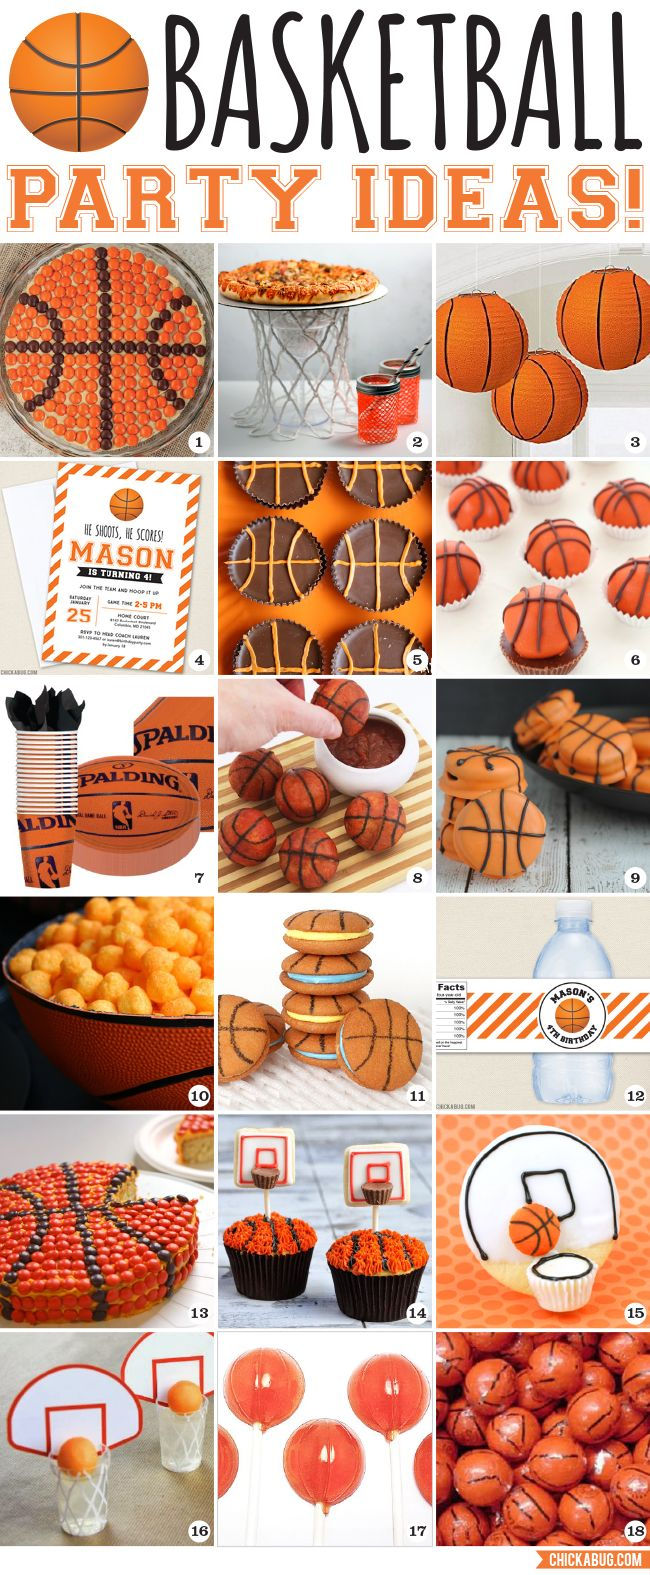 SLAM DUNK basketball party ideas! #basketballparty